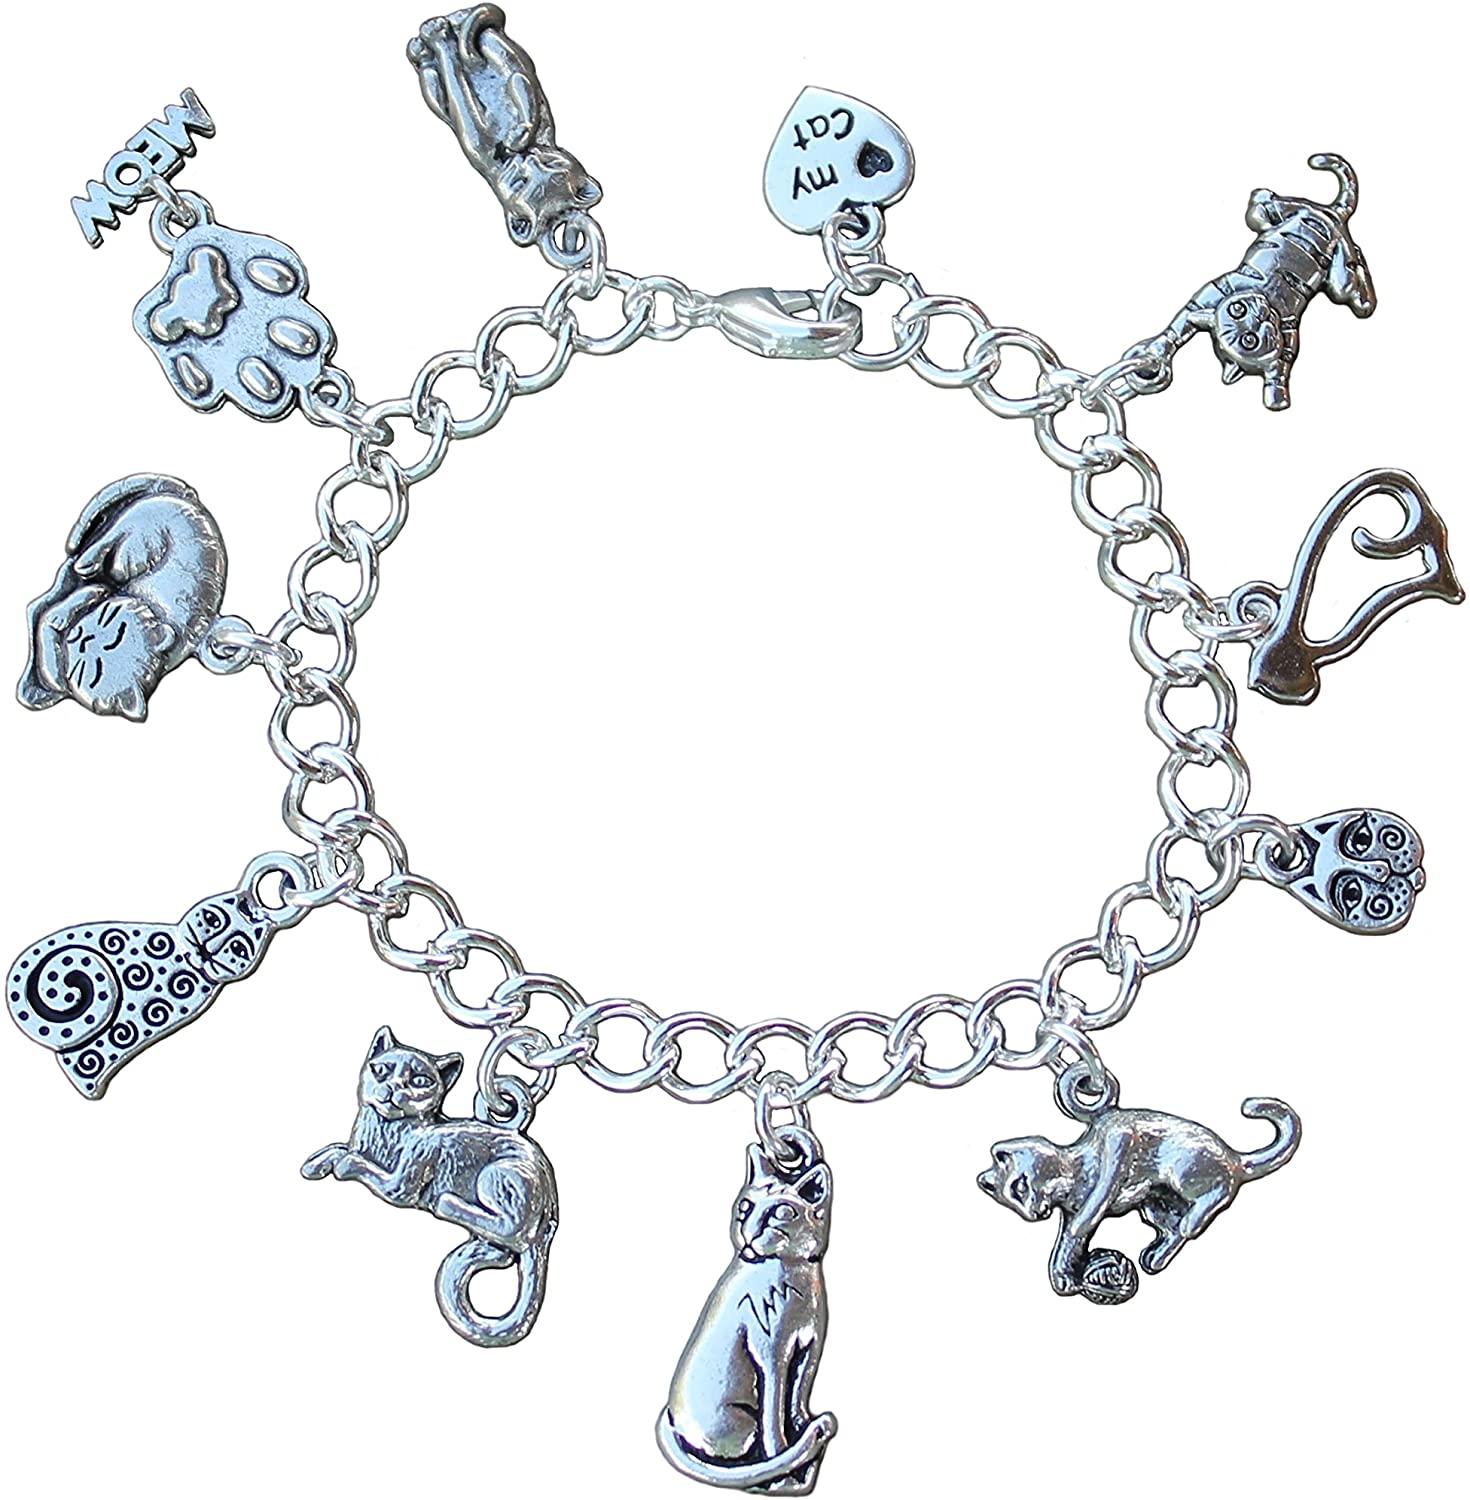 Night Owl Jewelry Silver Plated Love My Cat Charm Bracelet - Kitty Themed Charms on Chunky Silver Plated Chain- Sizes XS-XL